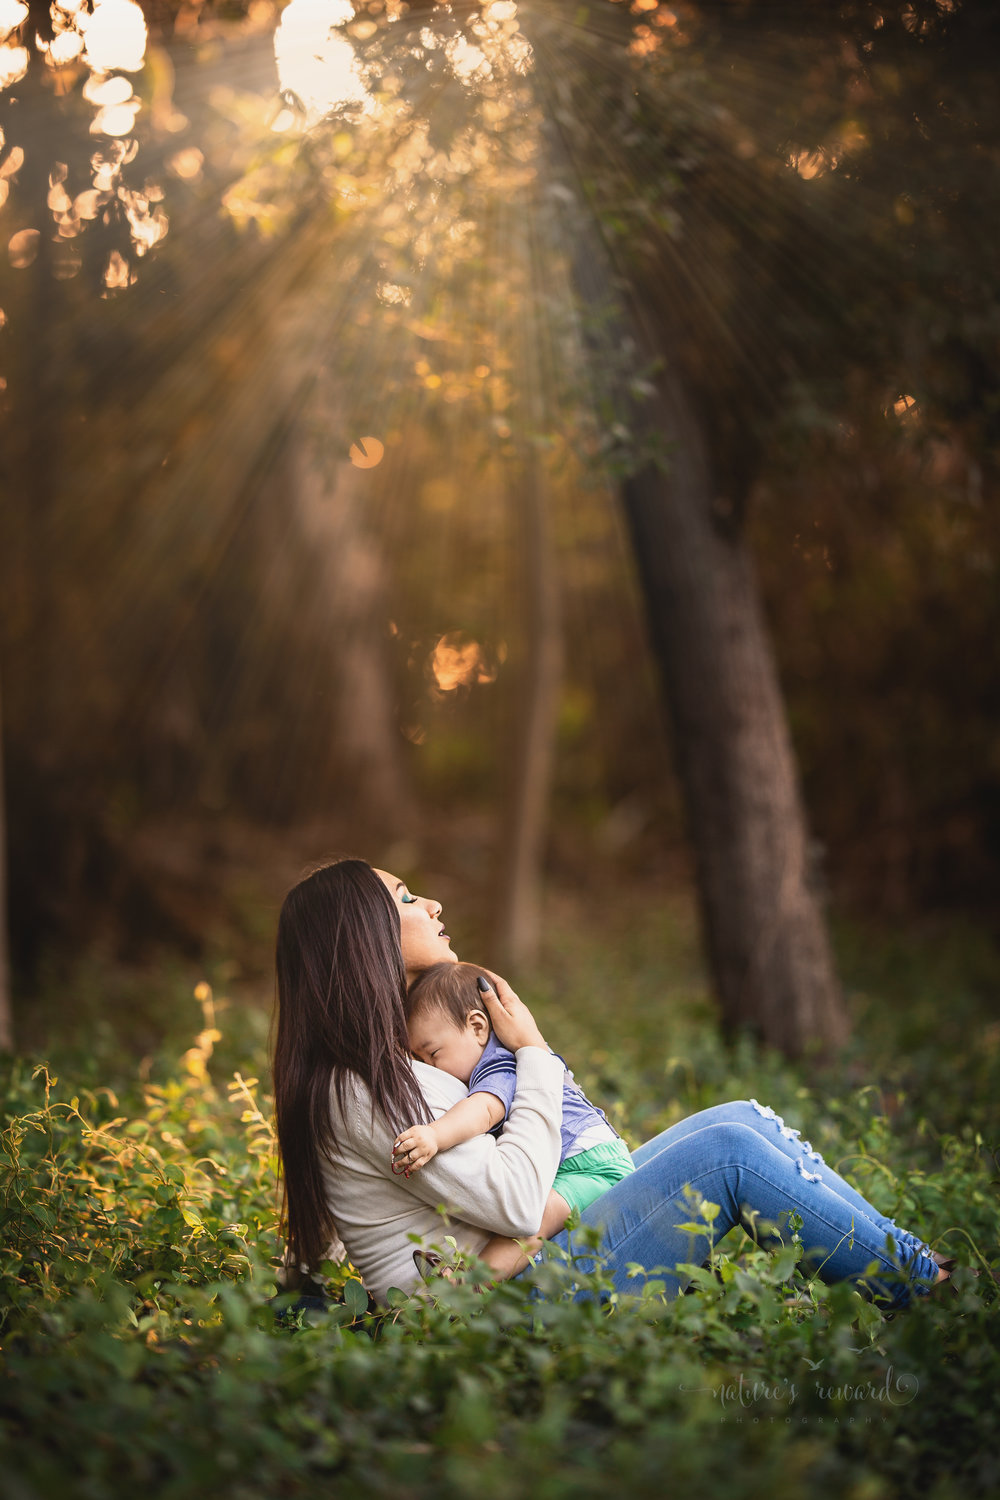 My favorite portrait from this beautiful session.  Mother and son cuddle in the light in this in this lovely portrait by Nature's Reward Photography